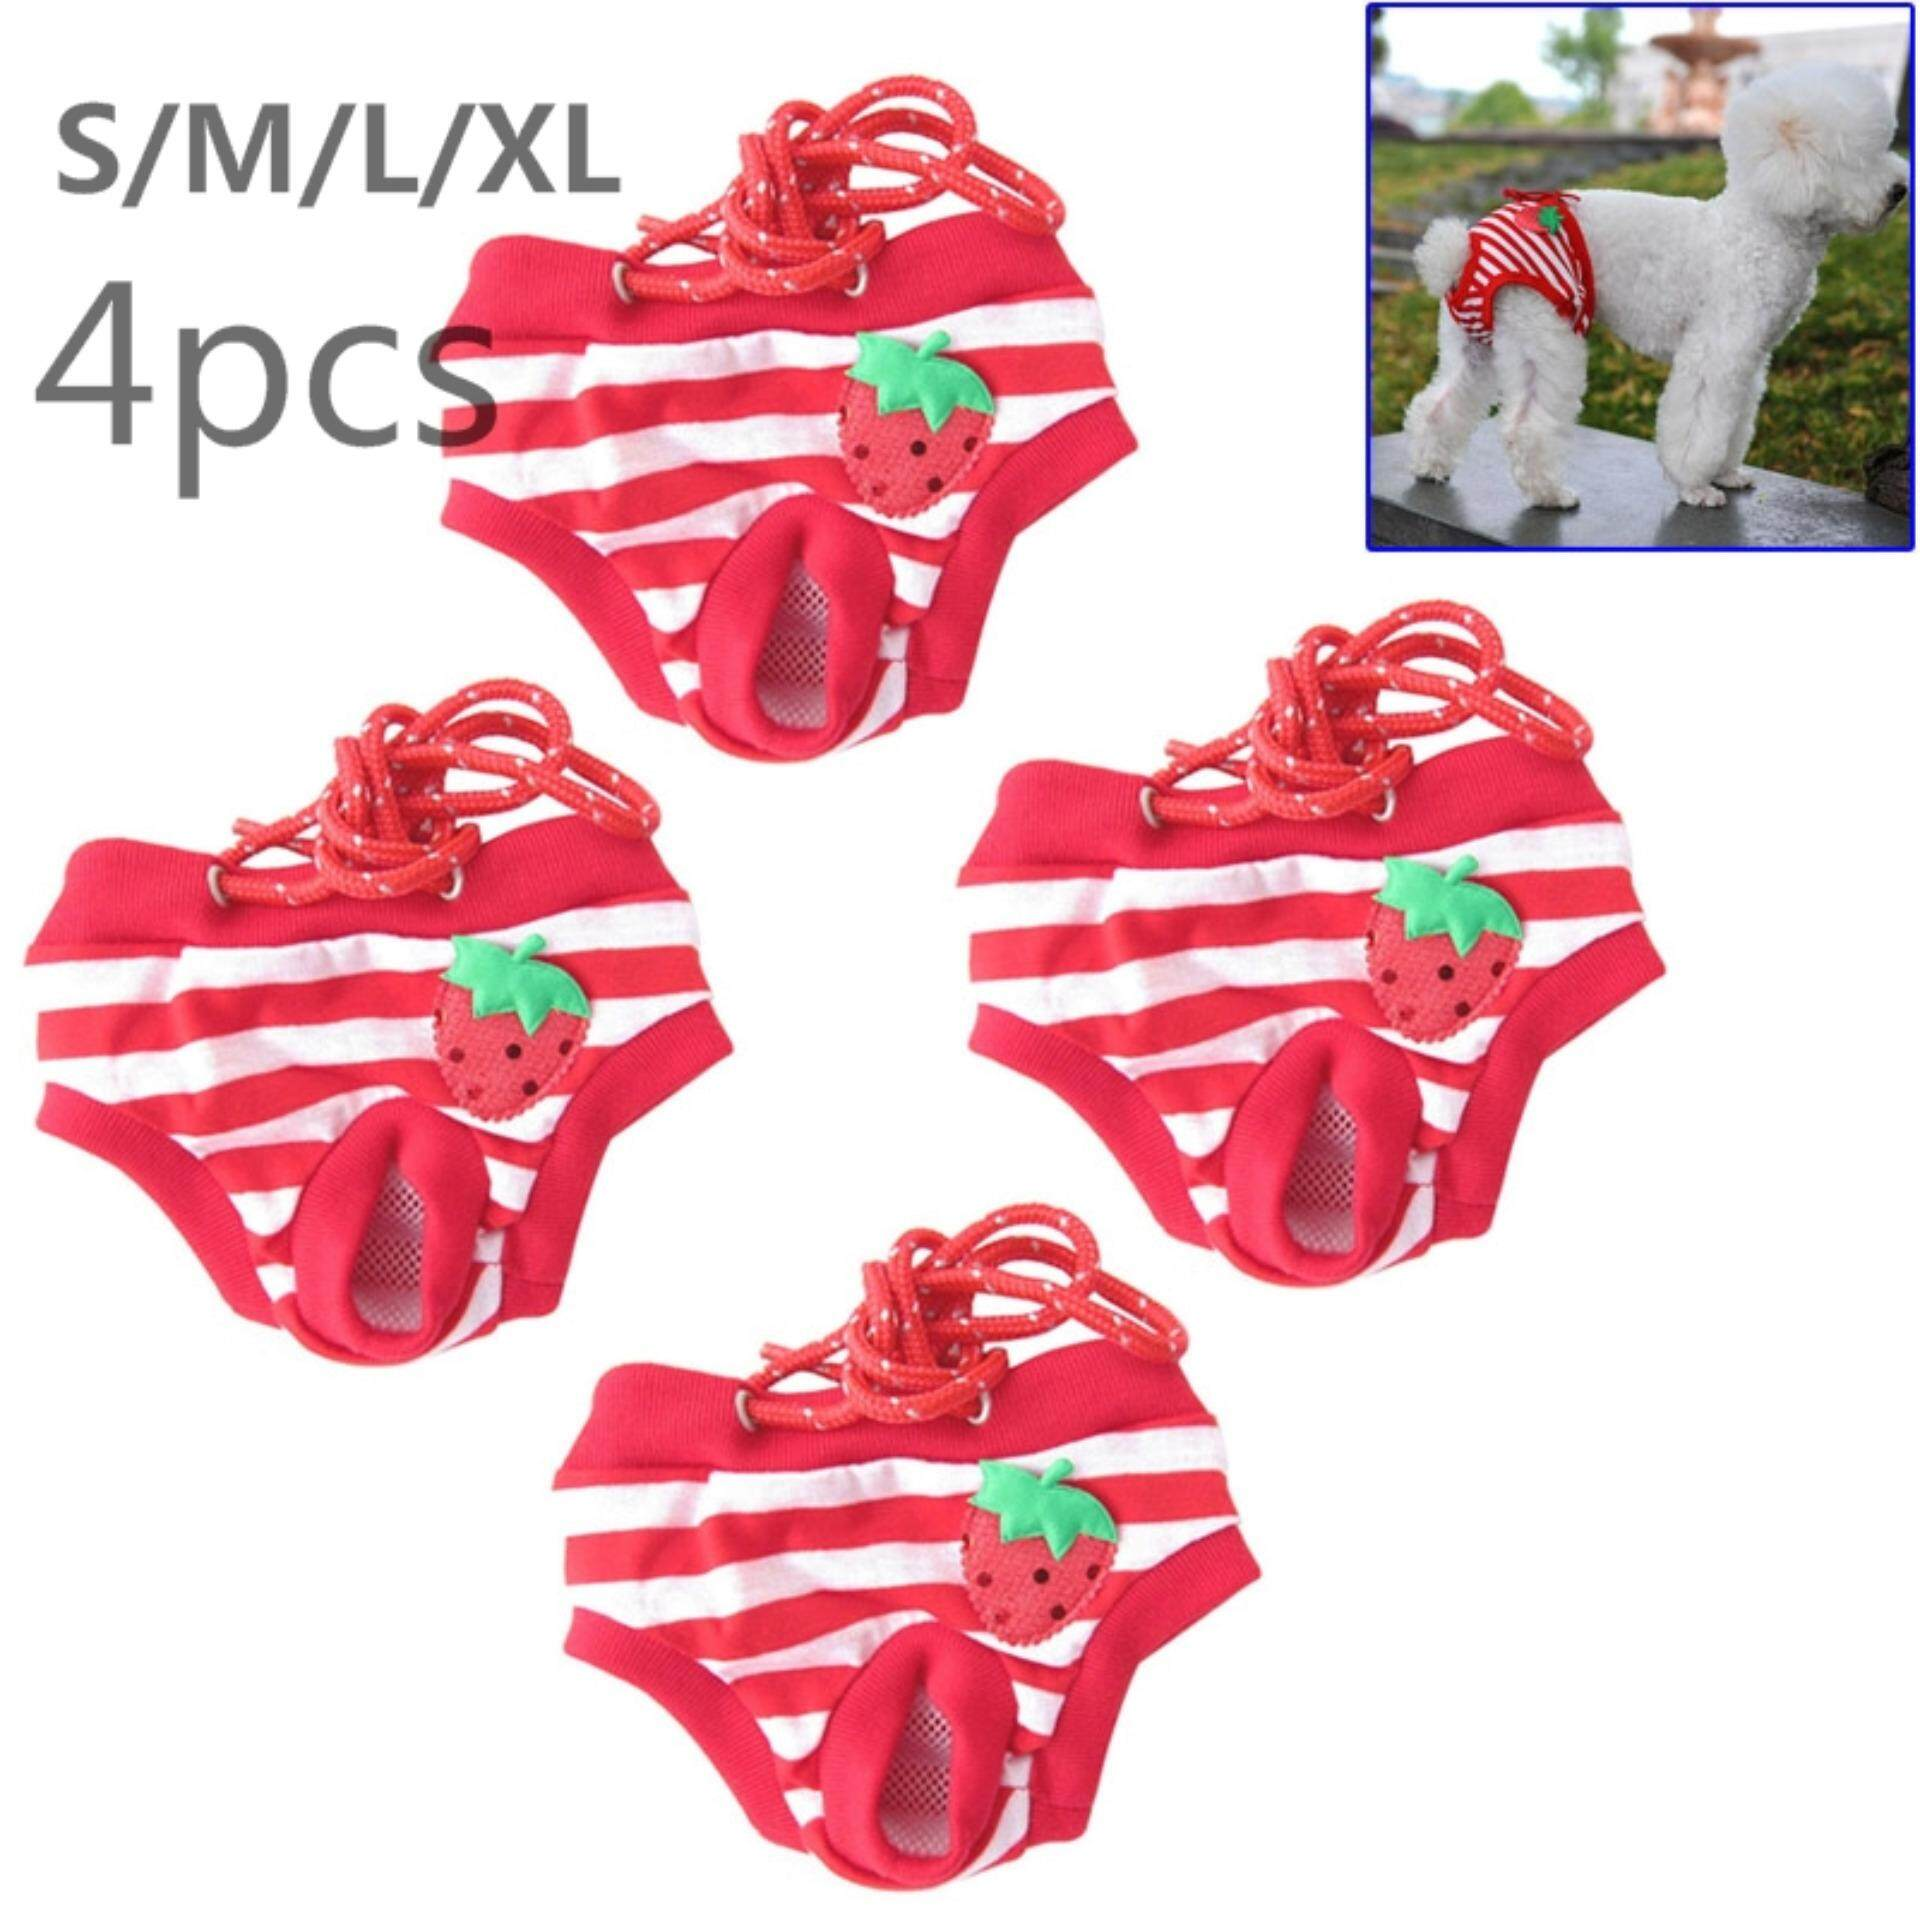 การส่งเสริม 4Pcs Emale Pet Dog Puppy Diaper Pants Physiological Sanitary Short Panty S/M/L/XL hot deal - มีเพียง ฿172.00